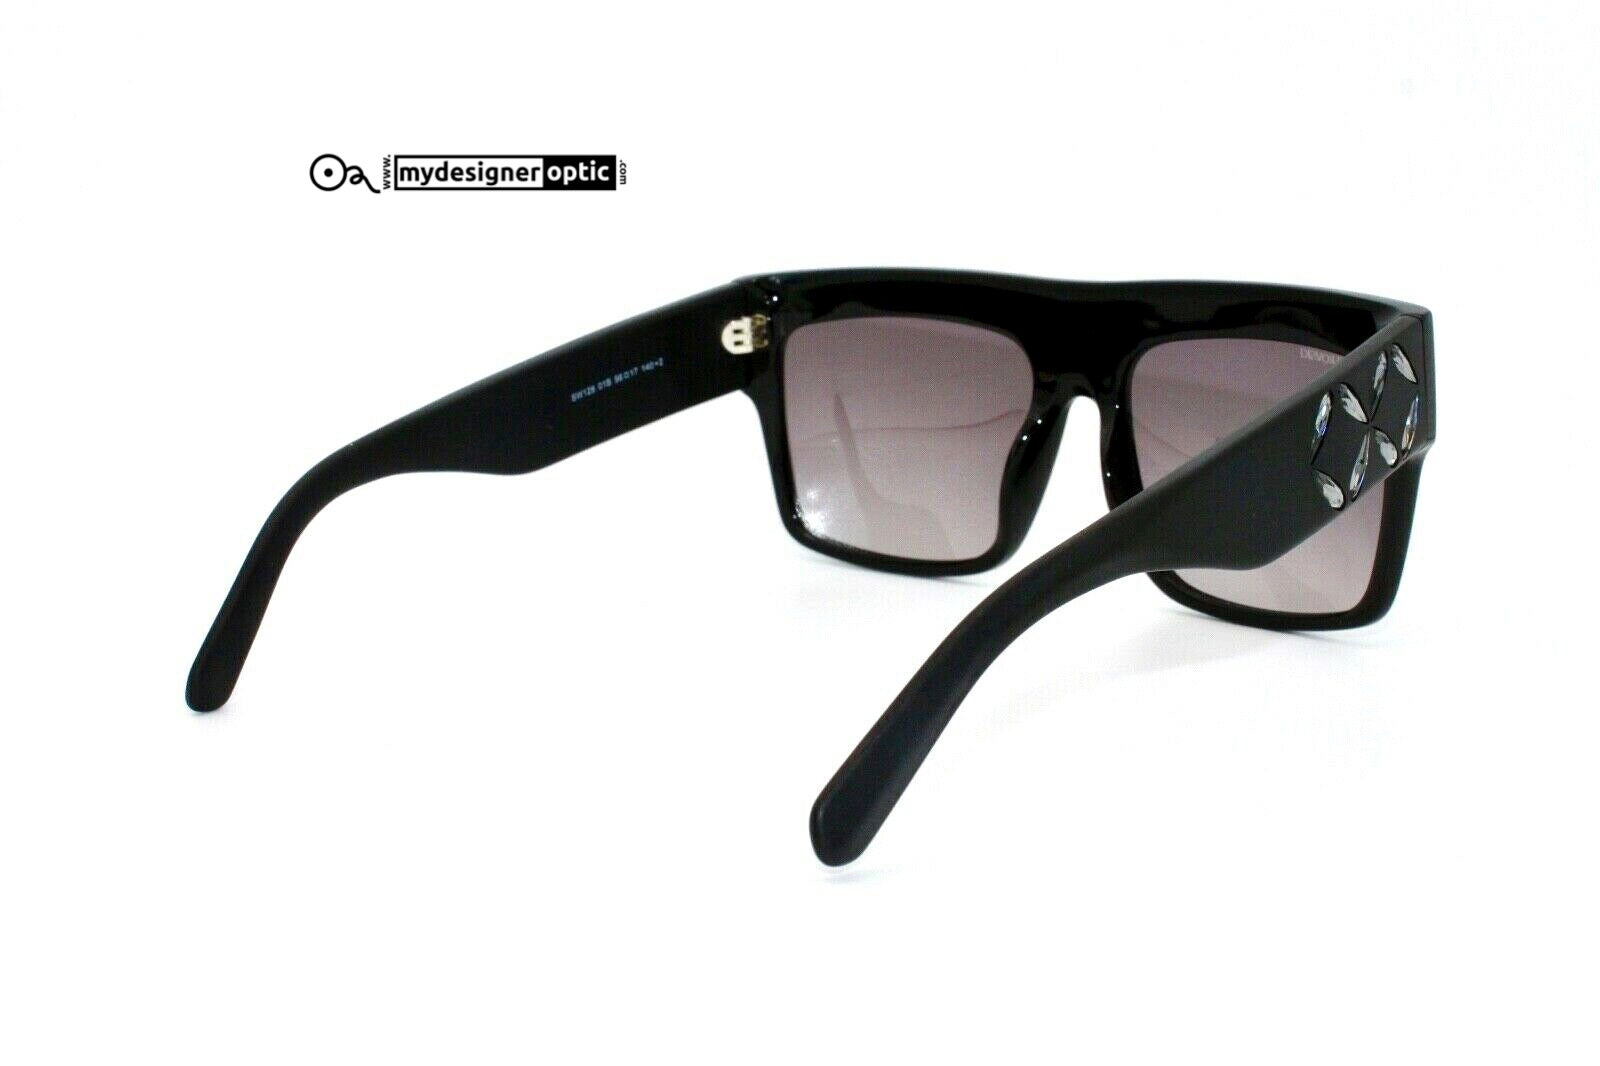 Versace Sunglasses MOD. 4174 211/8F 61-19 125 2N Made in Italy - Mydesigneroptic